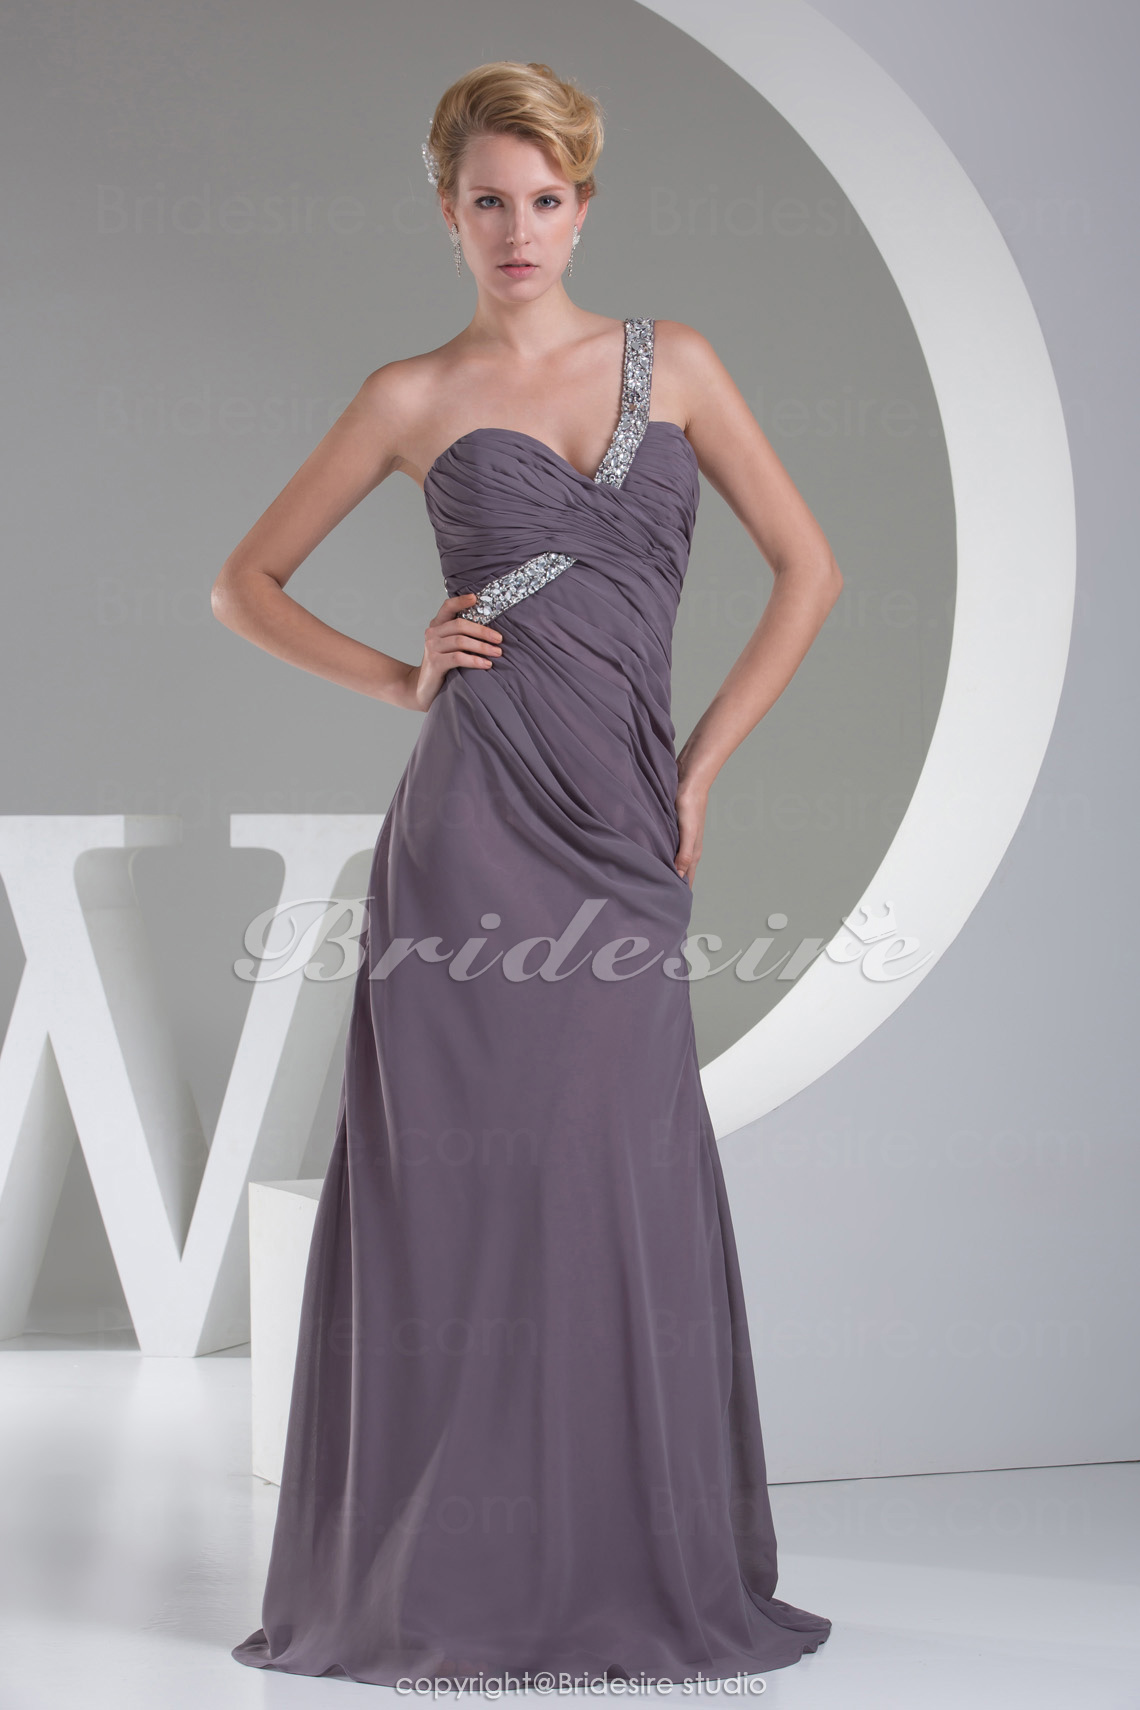 Sheath/Column One Shoulder Sweep/Brush Train Sleeveless Chiffon Bridesmaid Dress